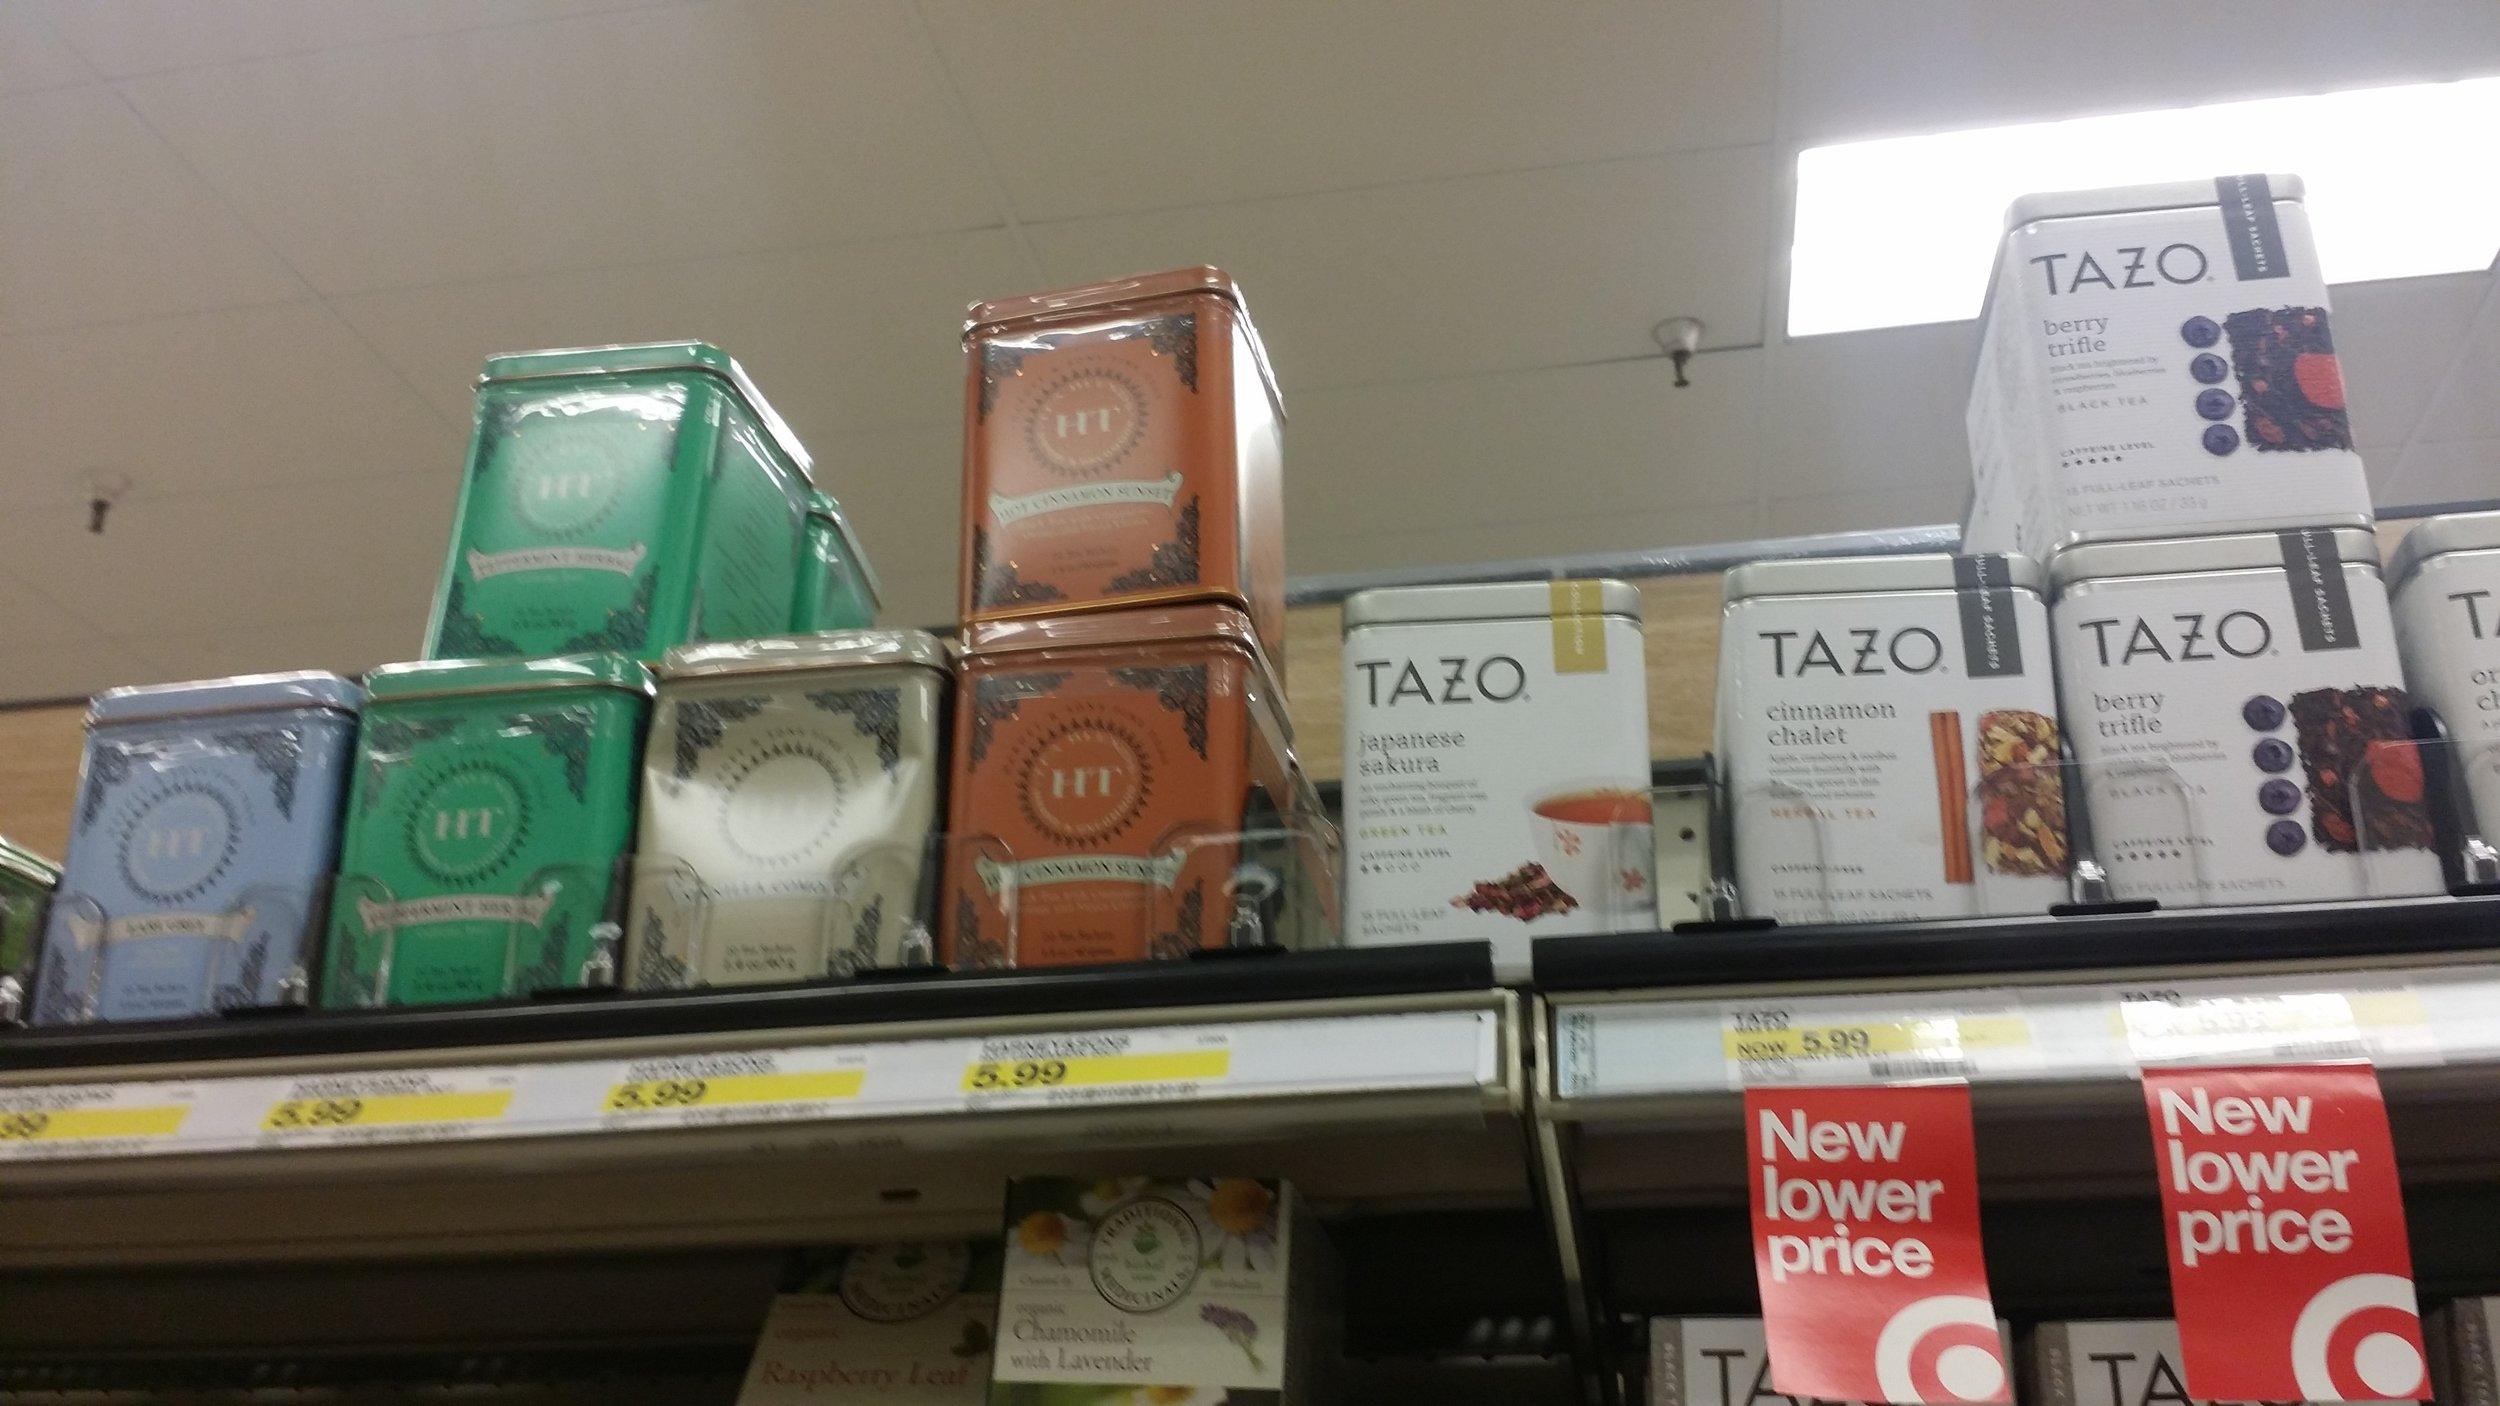 I was surprised to see loose leaf tea tins. The tea most likely is wrapped 85ab02e1500a0